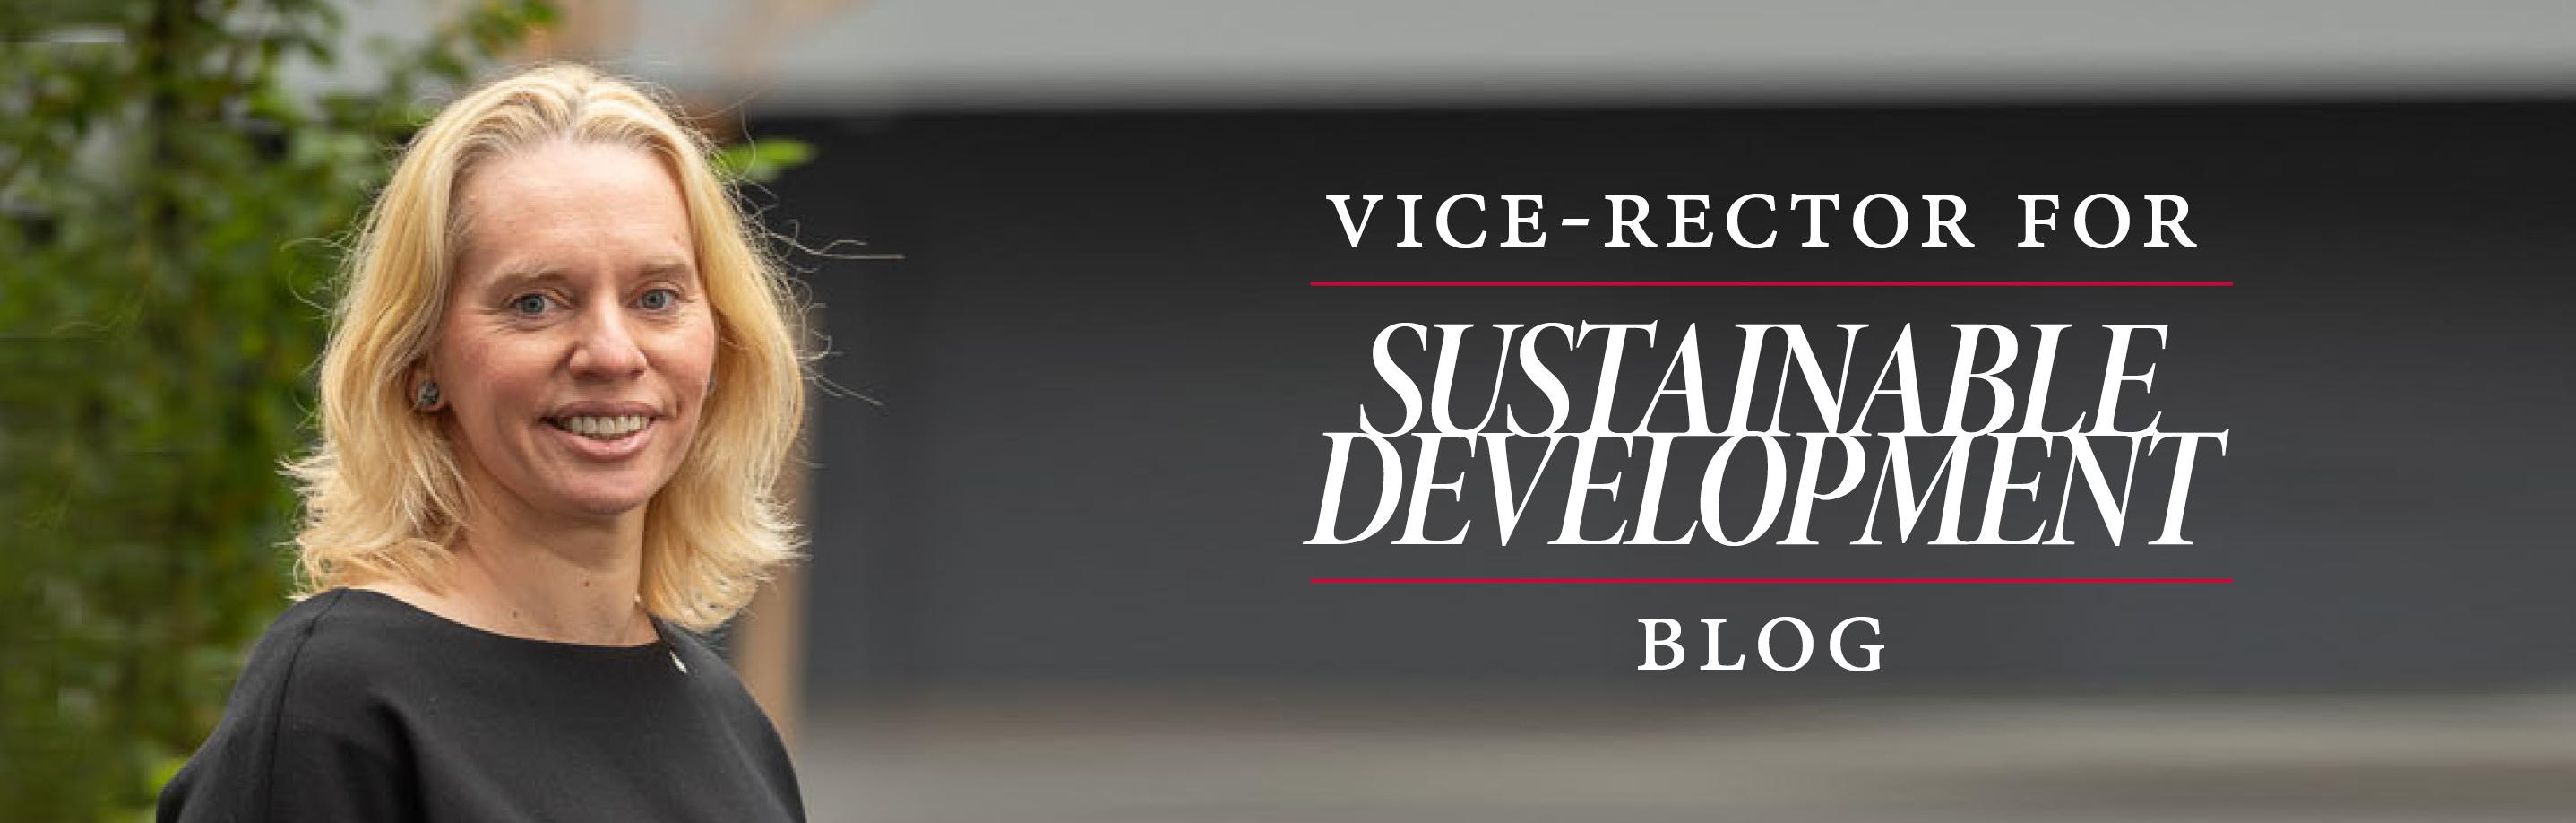 Vice-Rector for Sustainable development blog